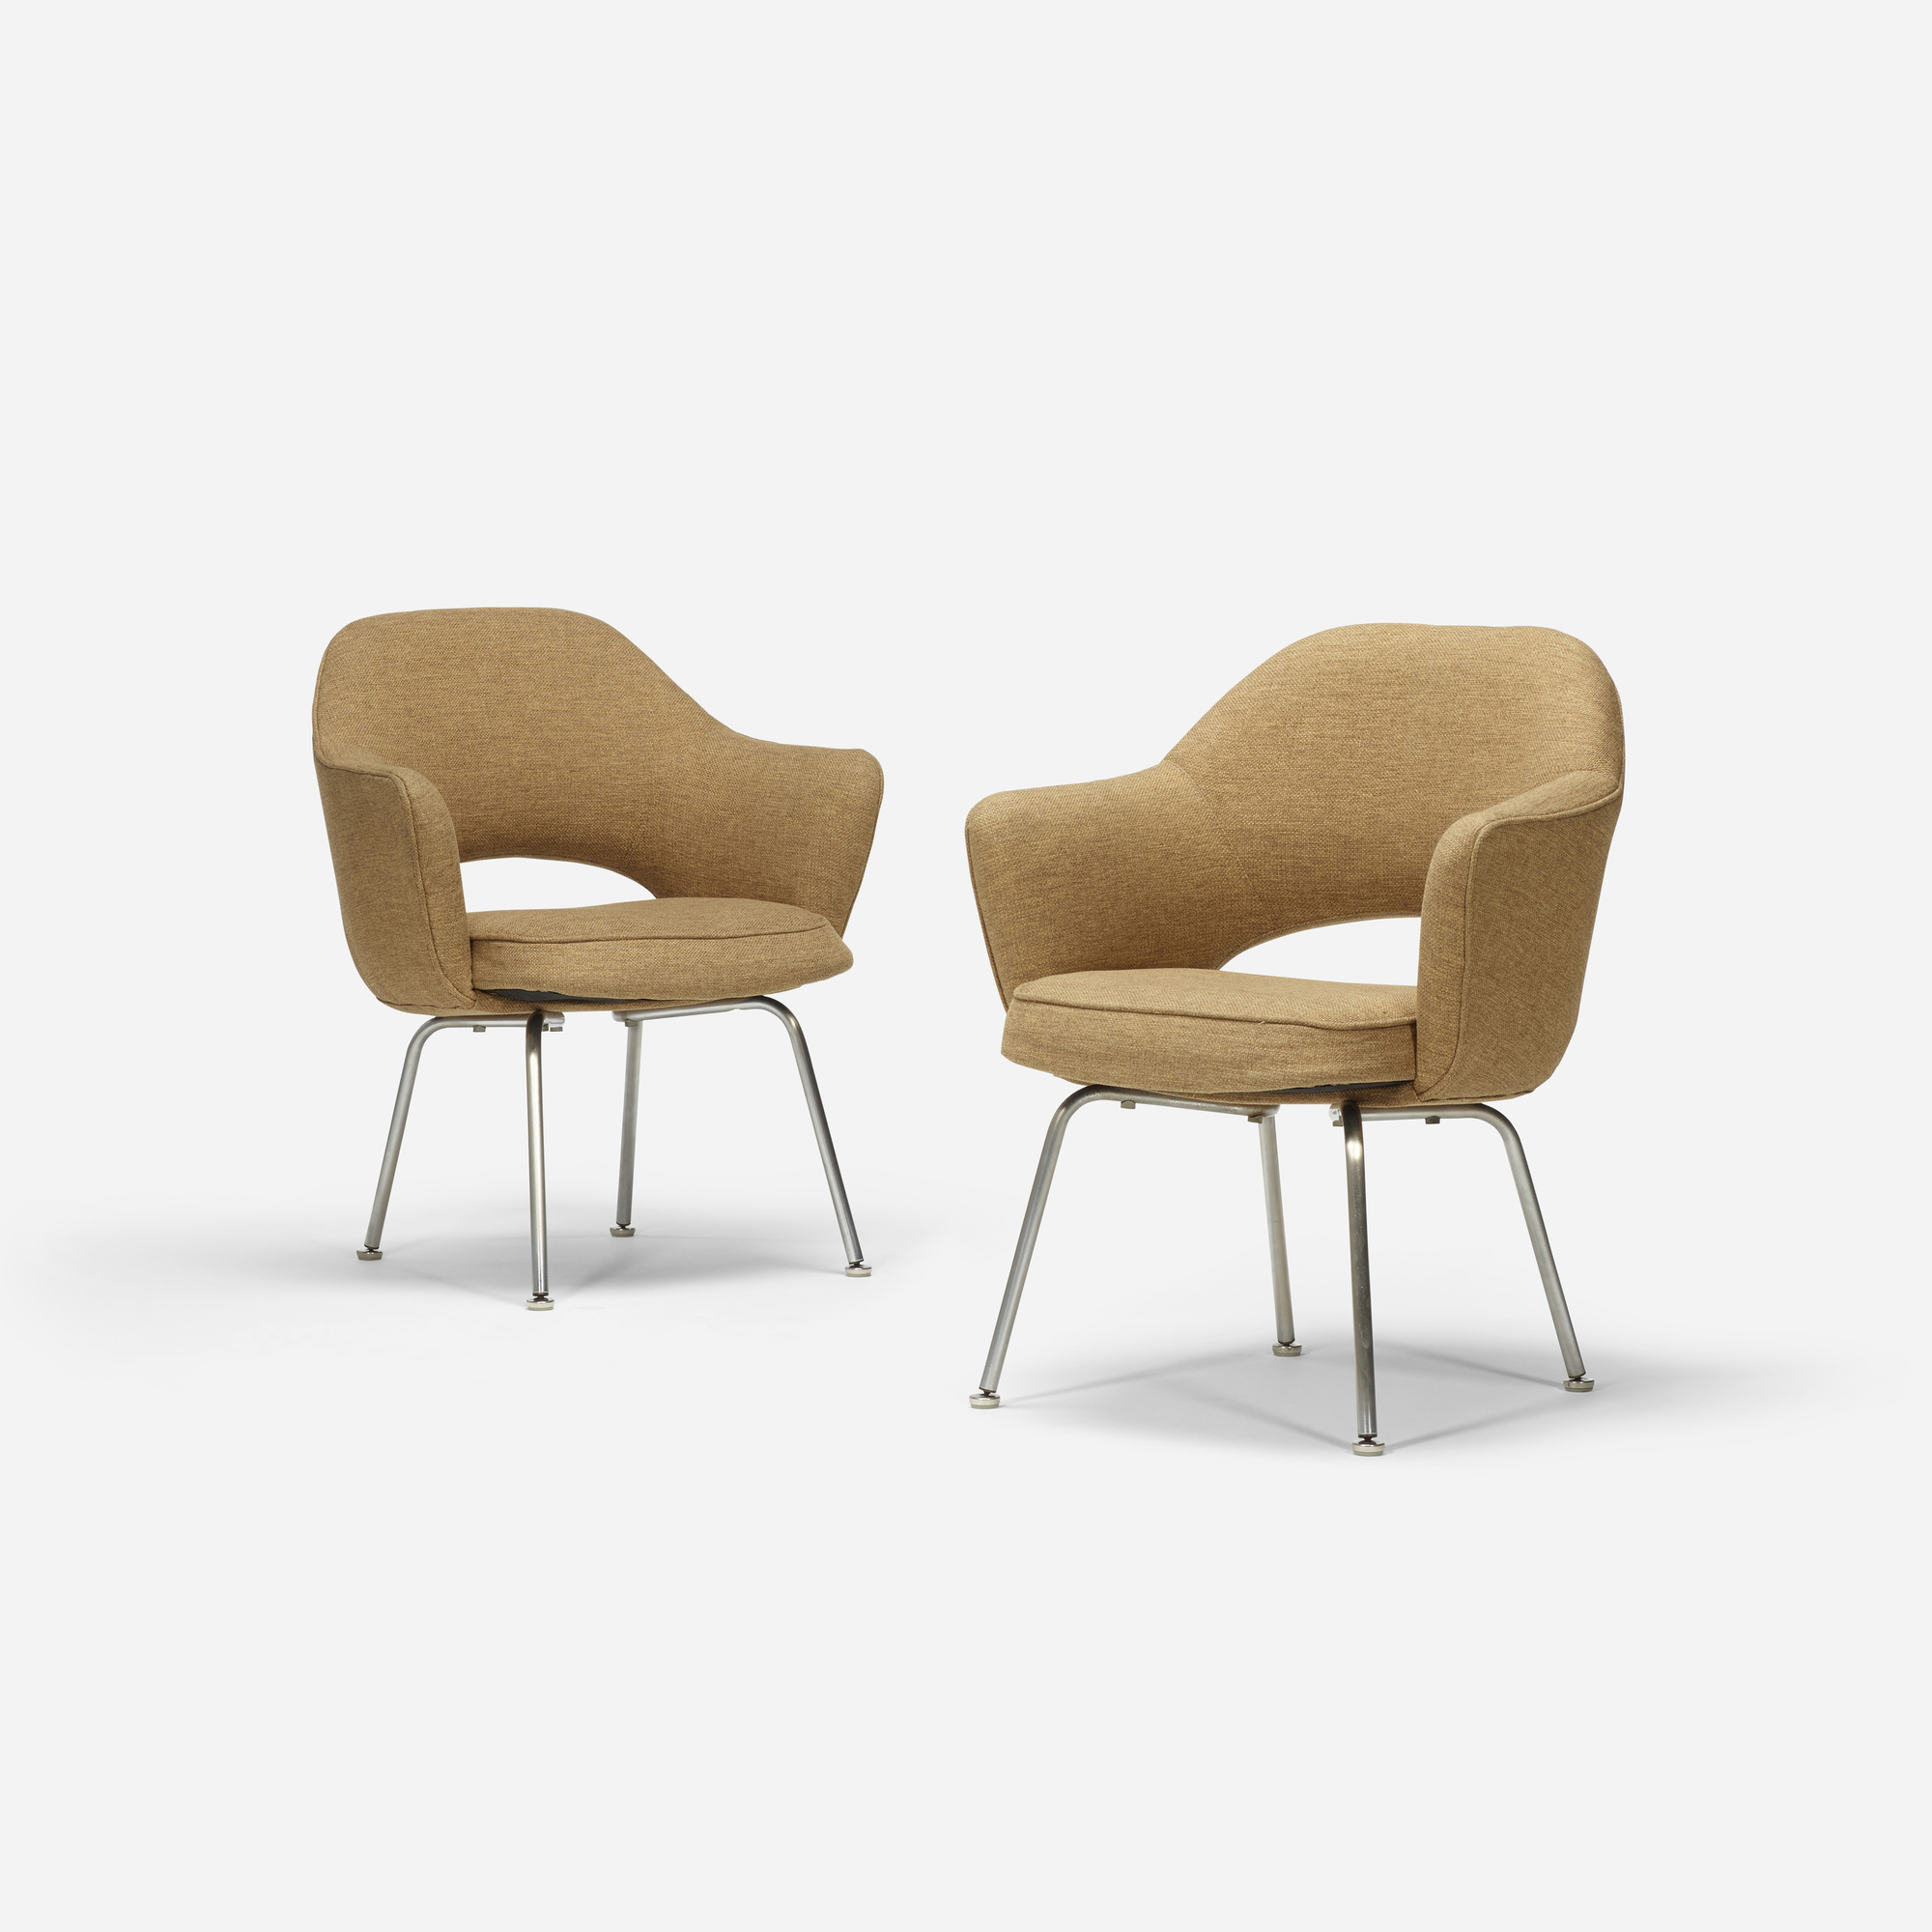 705: Eero Saarinen / dining chairs, pair (2 of 2)